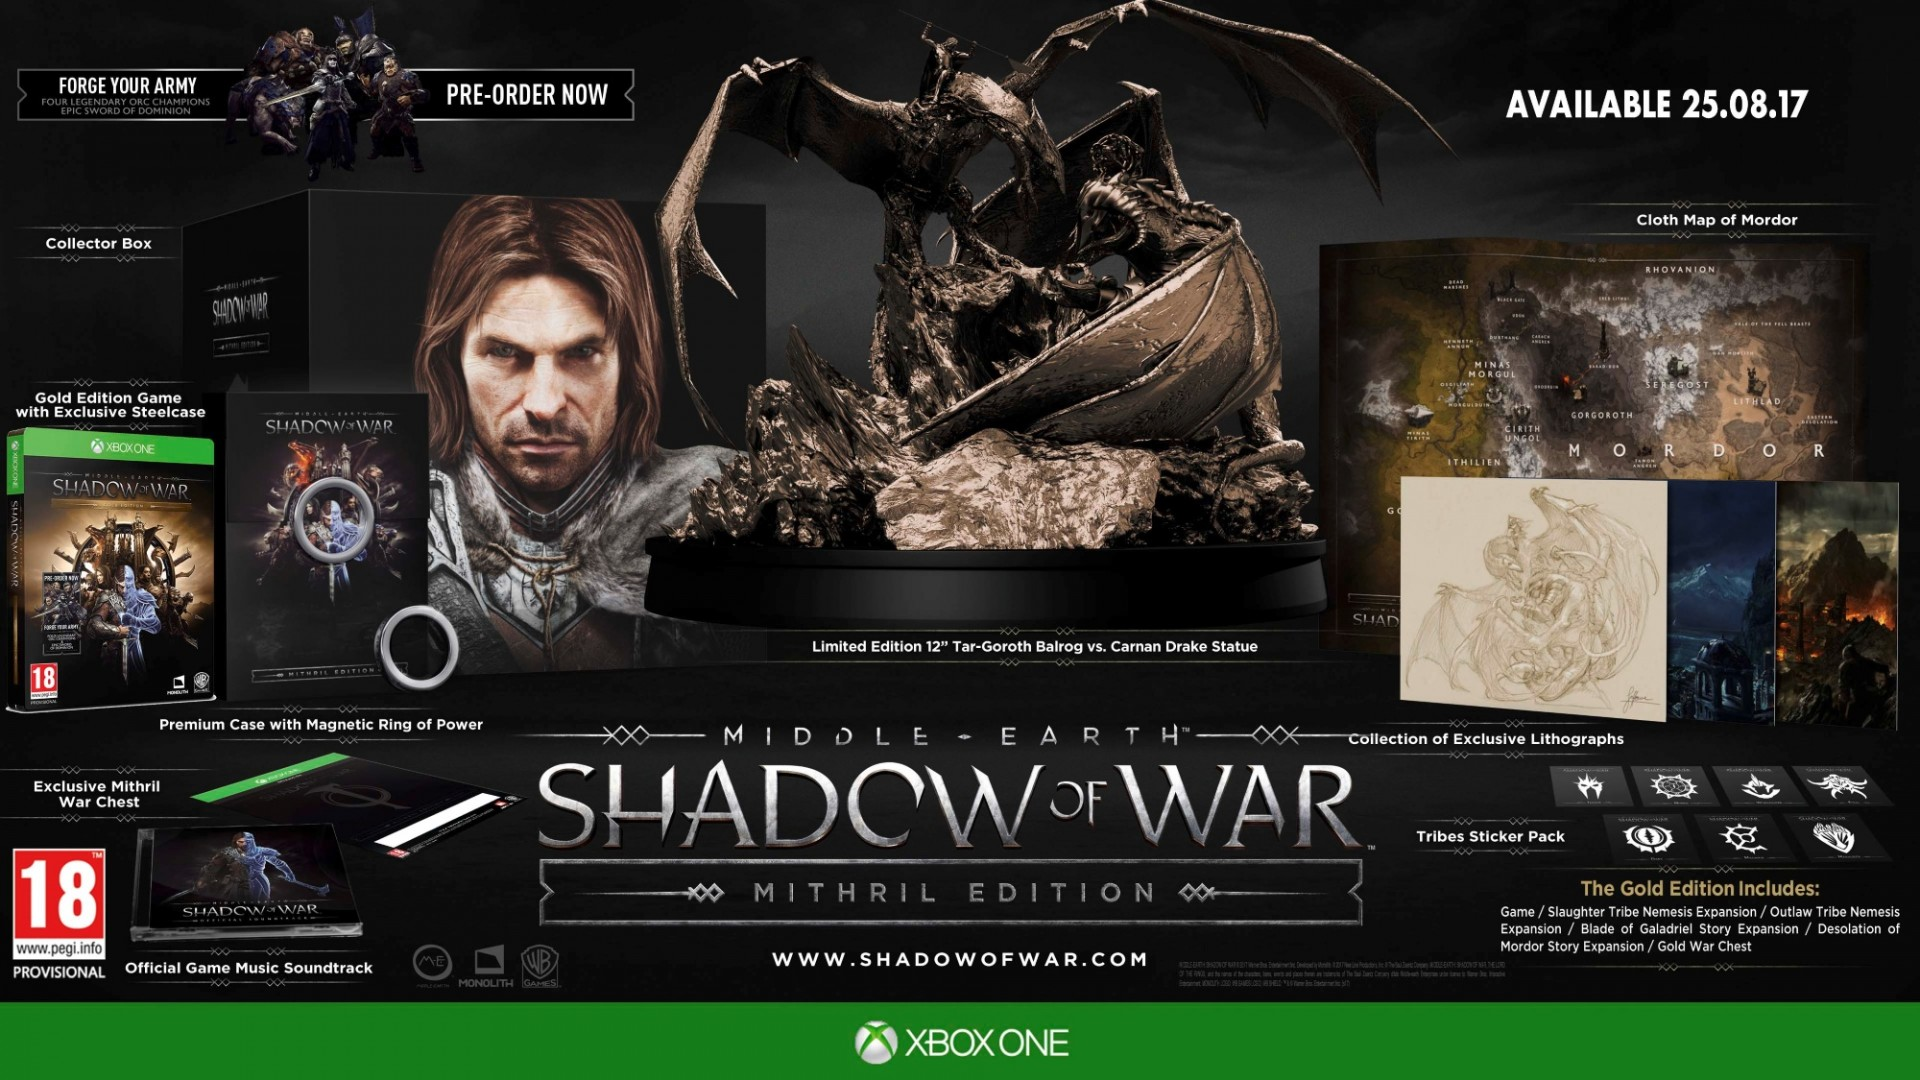 Middle-Earth: Shadow of War Mithril Edition